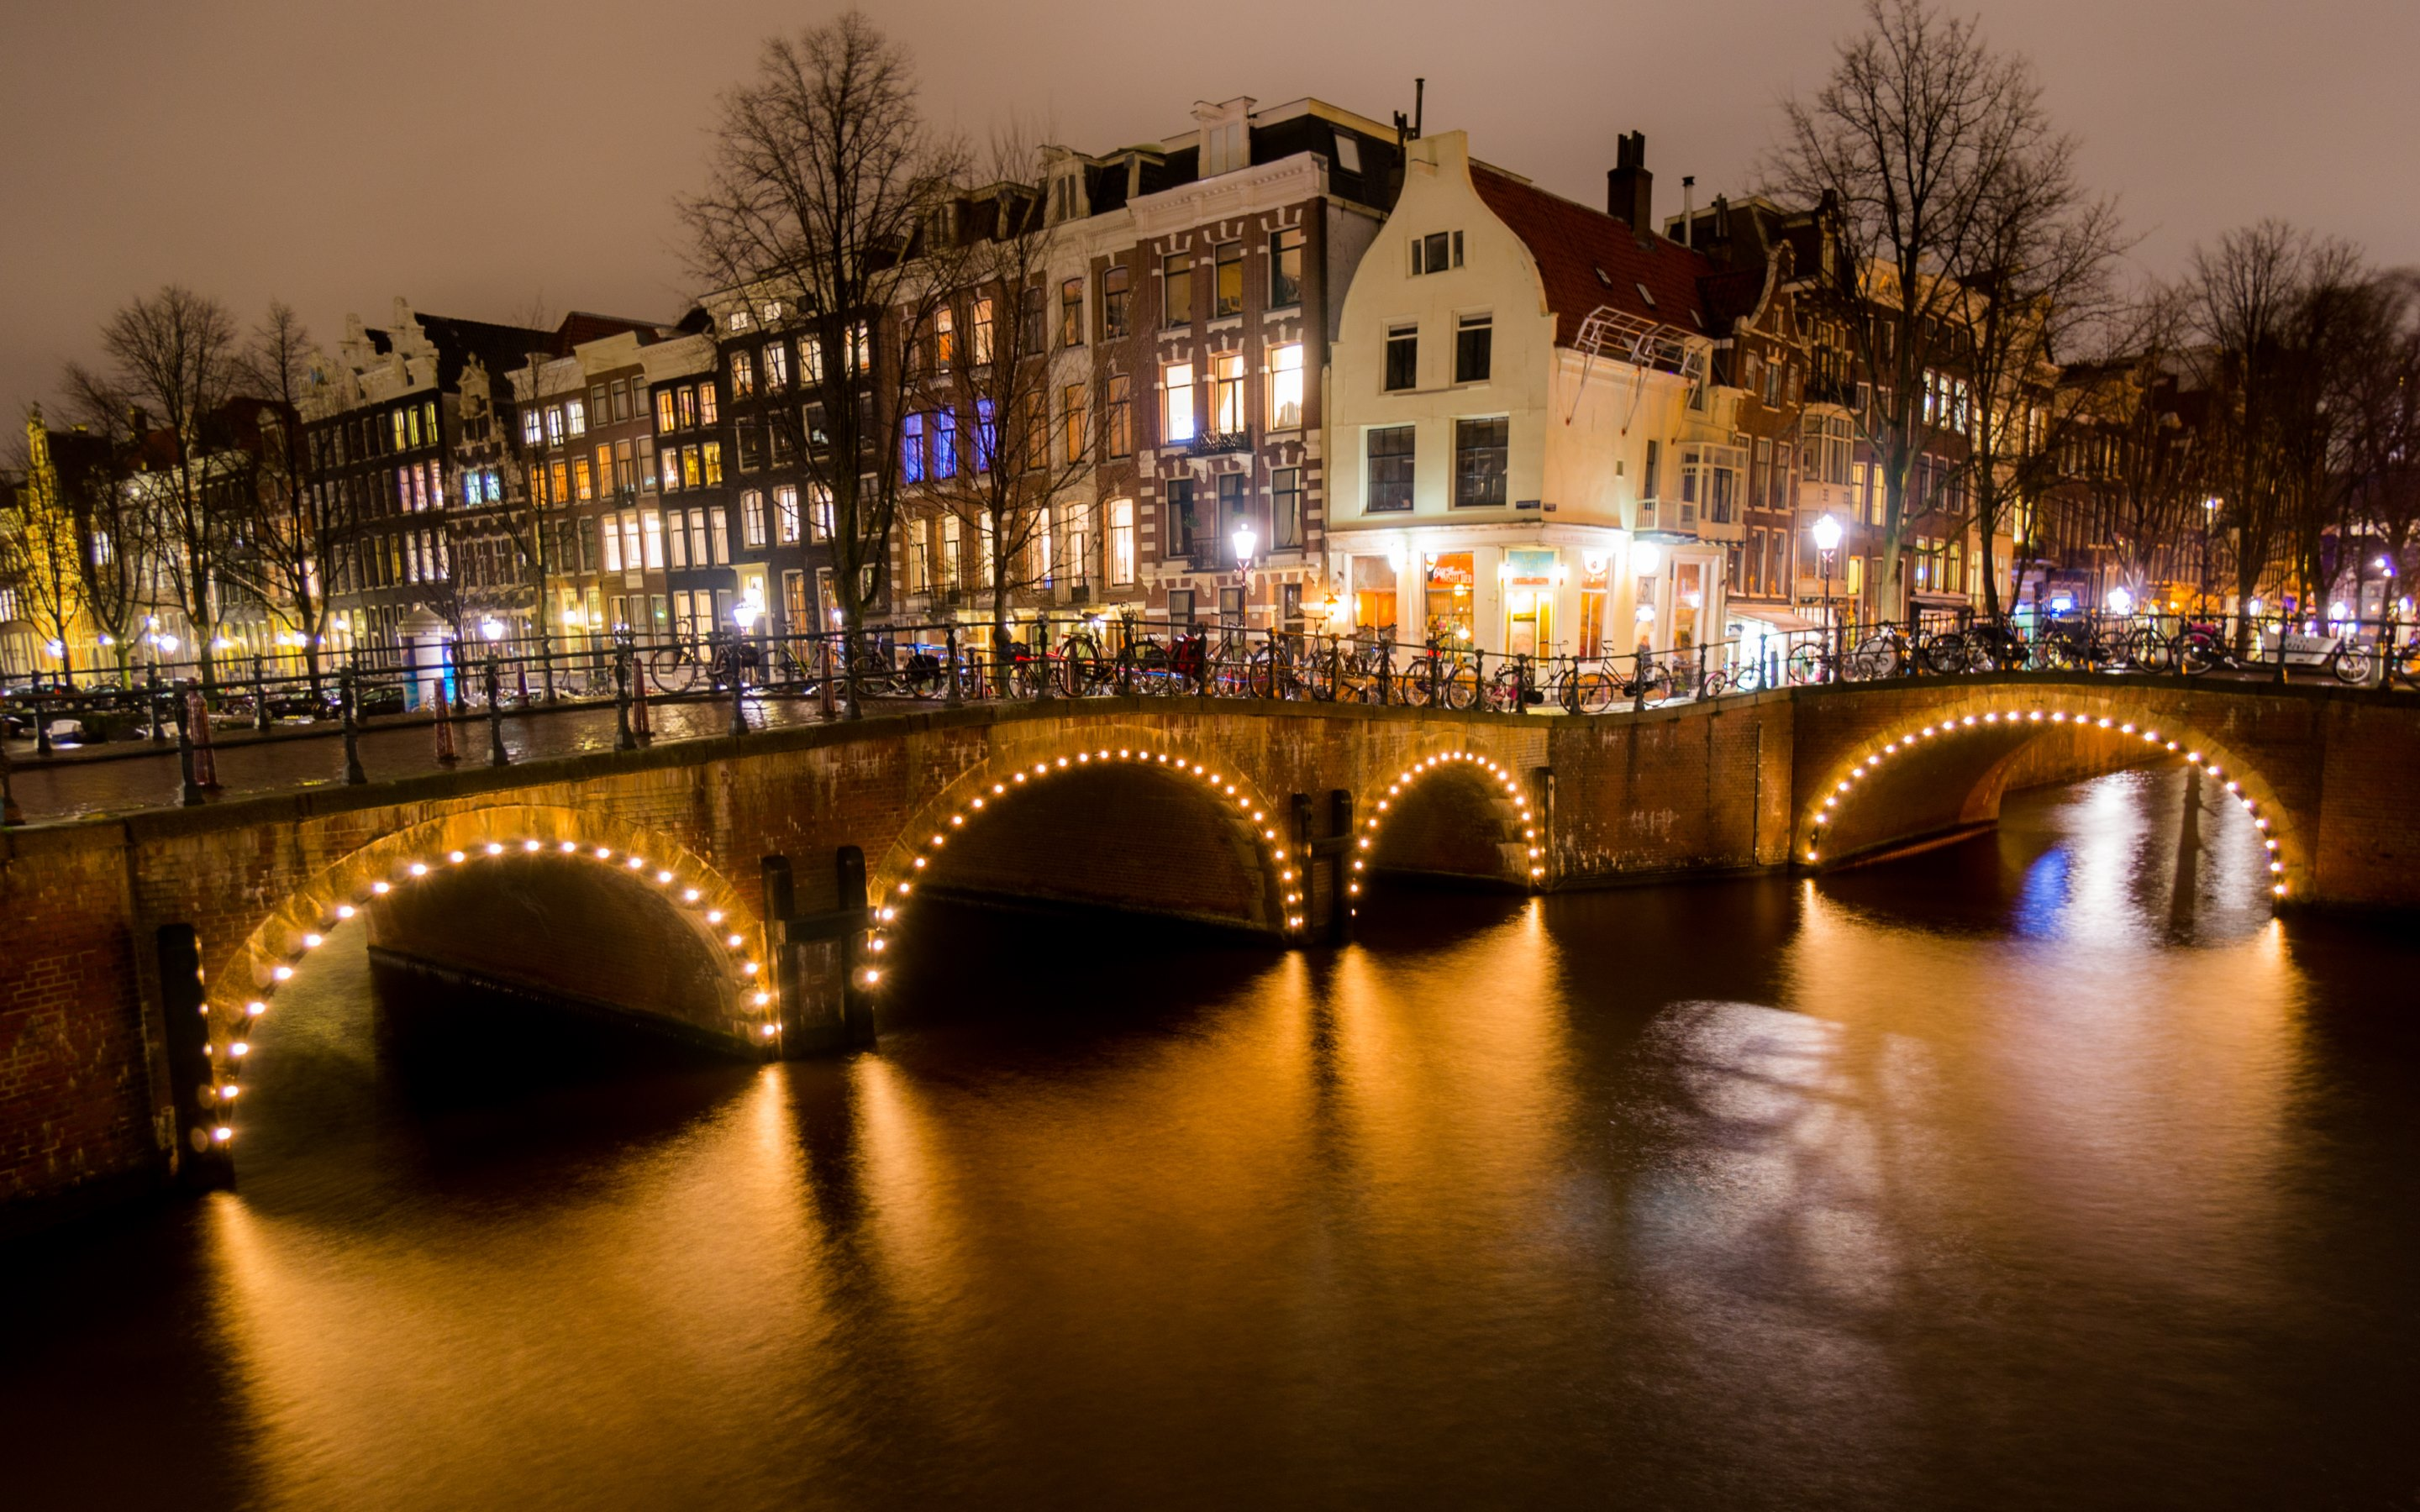 amsterdam netherlands wallpapers in hd 4k and wide sizes